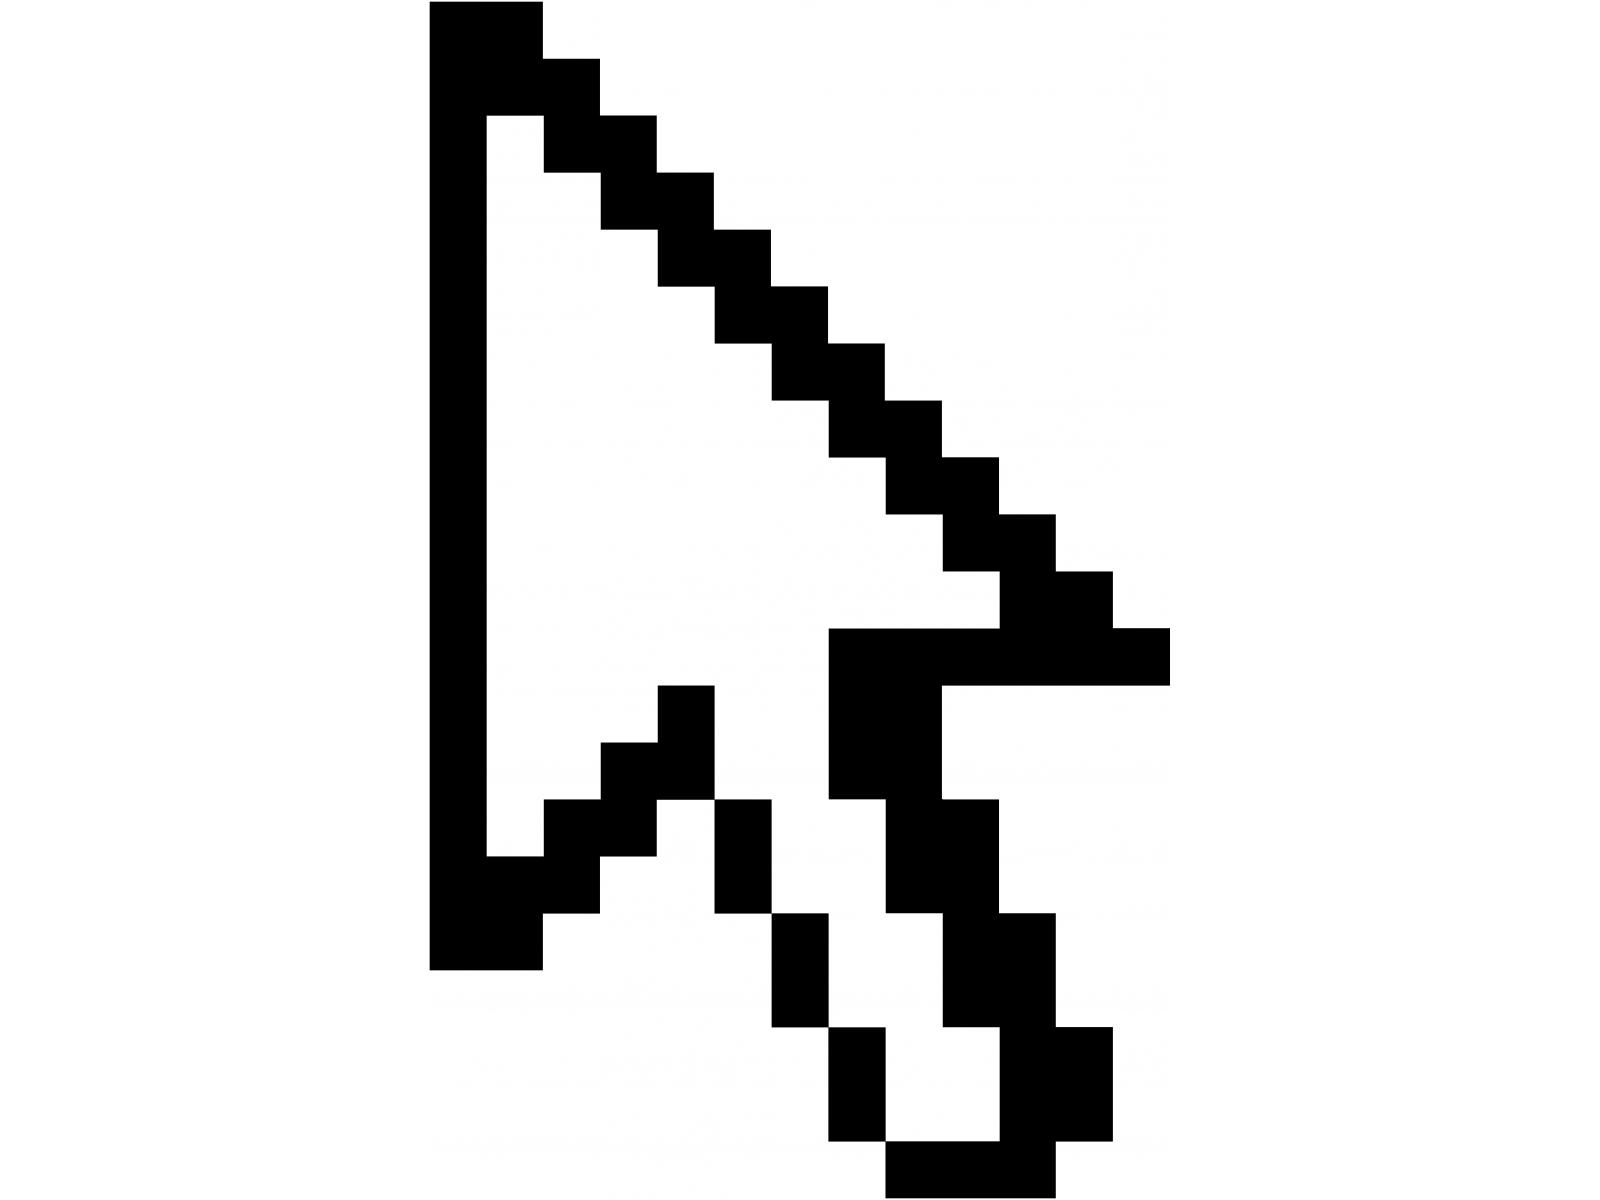 Computer Mouse Pointer Wallpaper